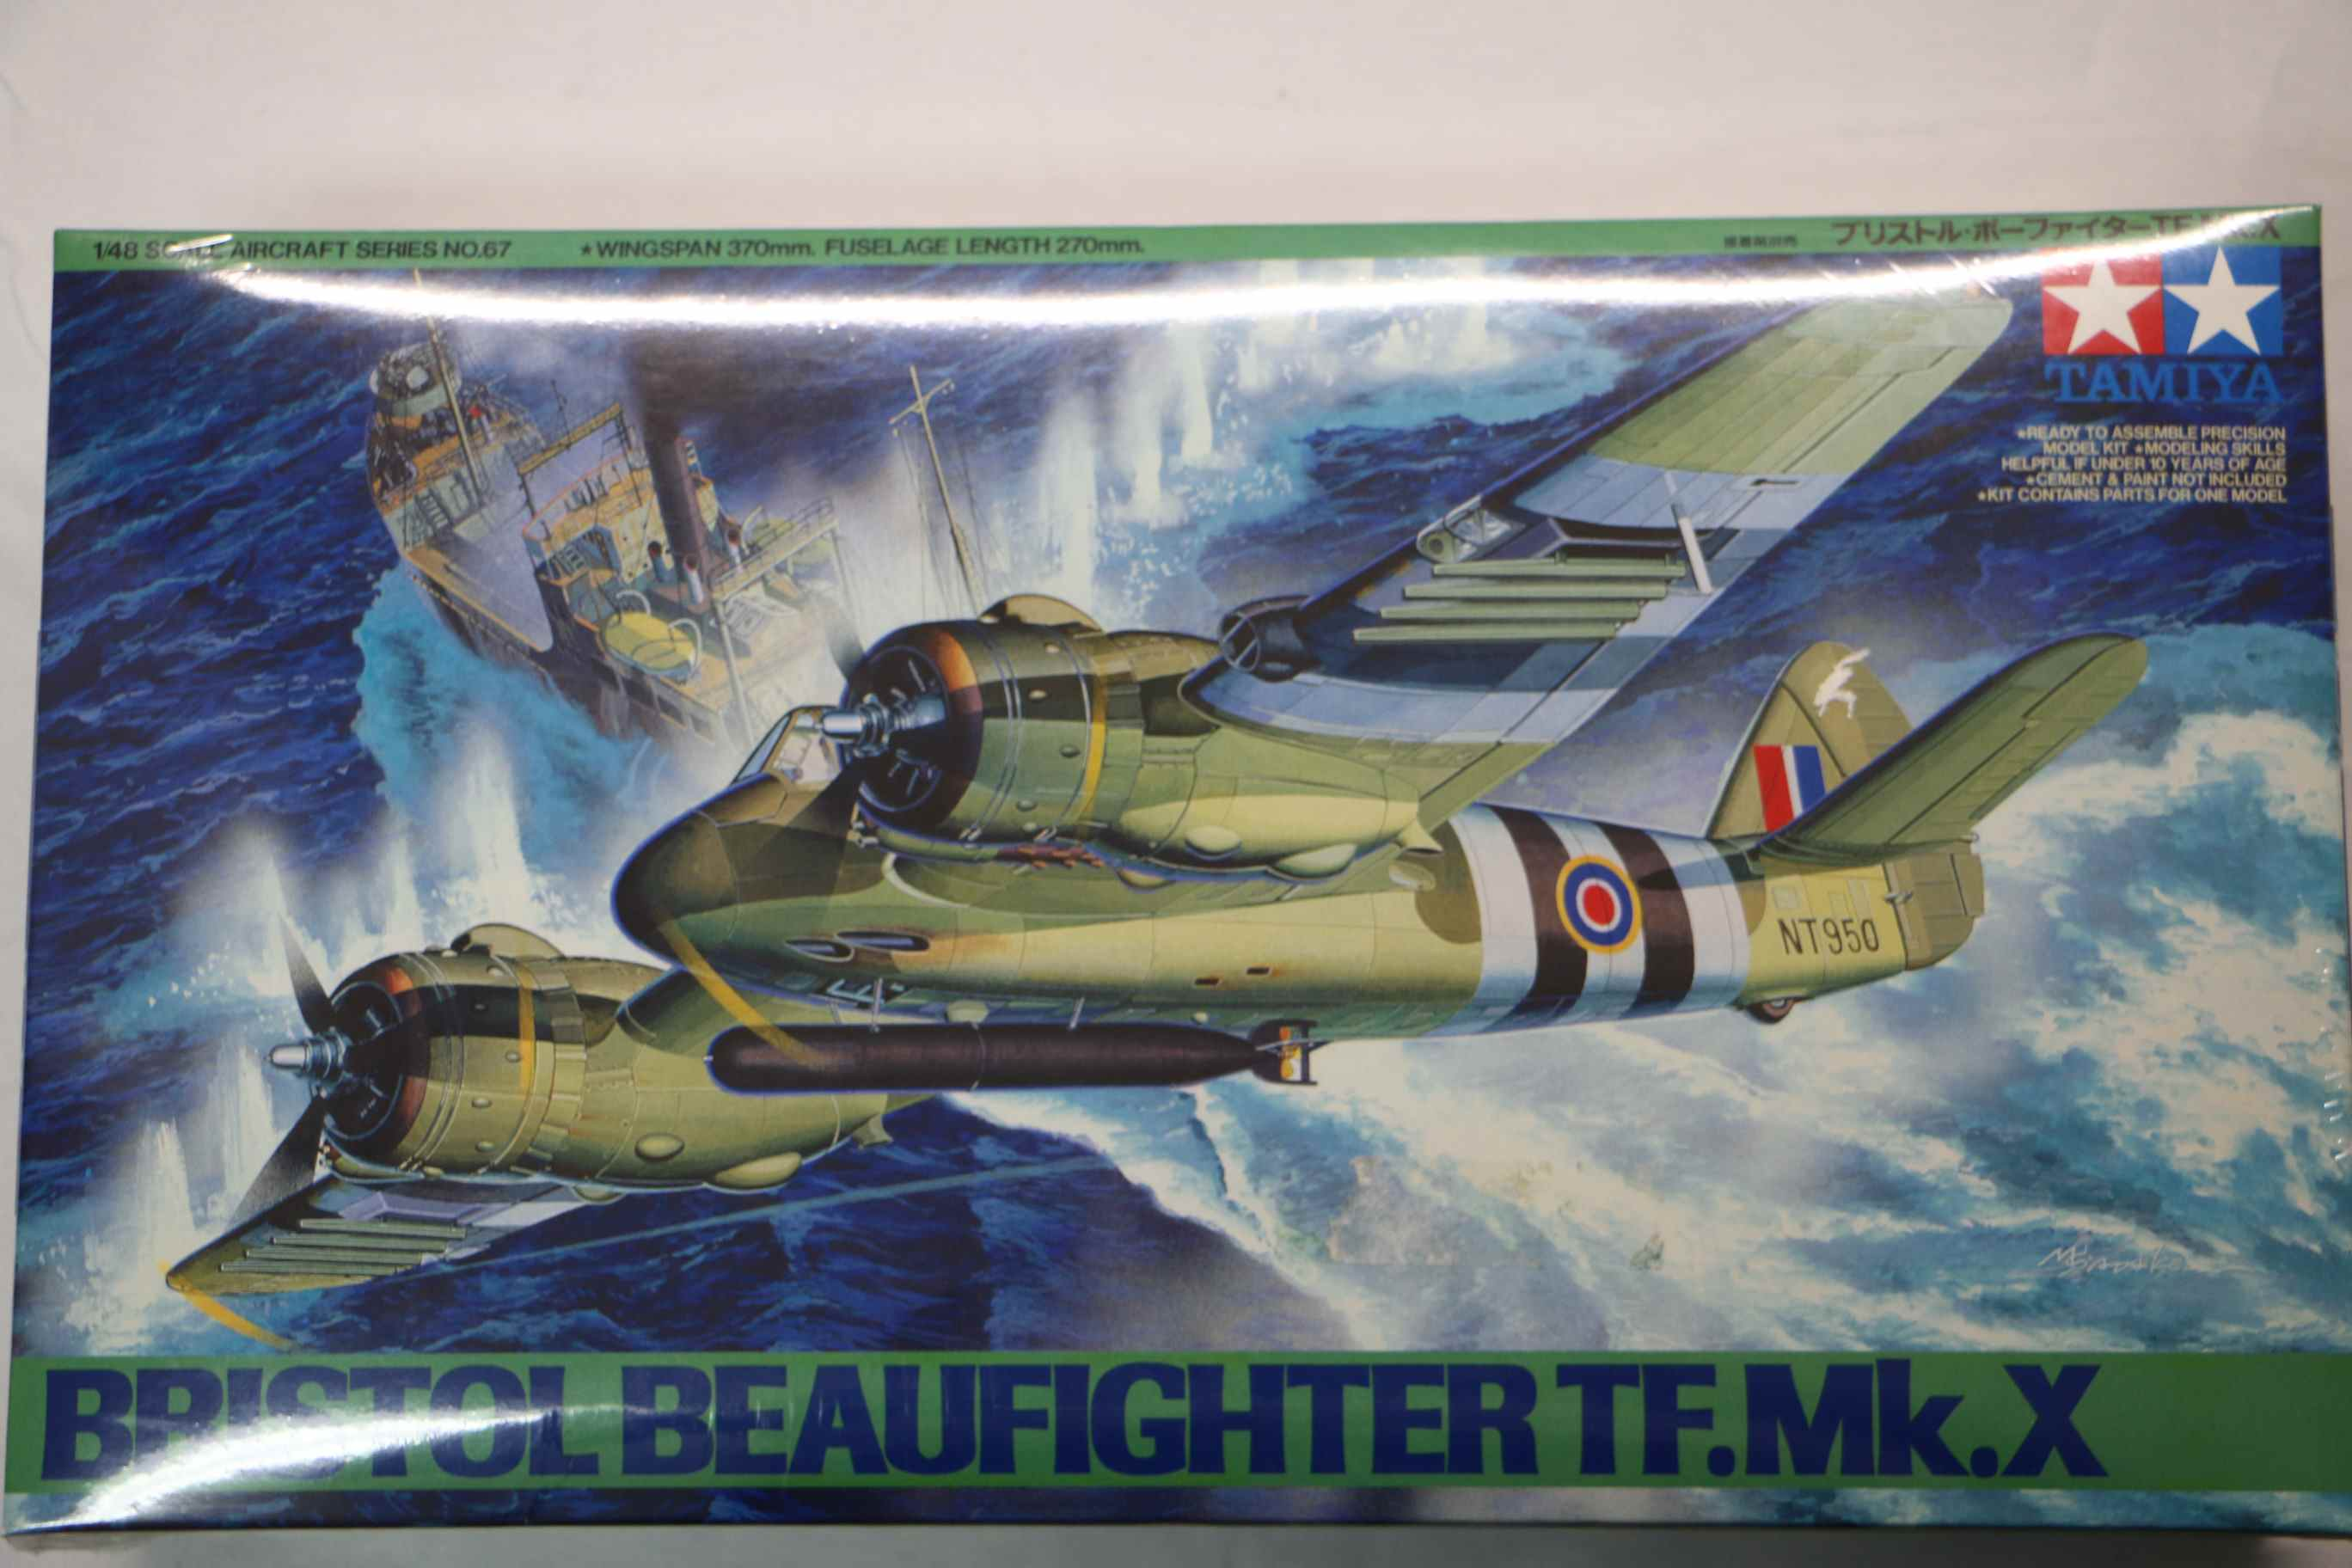 TAM61067 - Tamiya 1/48 Bristol Beaufighter TF.Mk.X